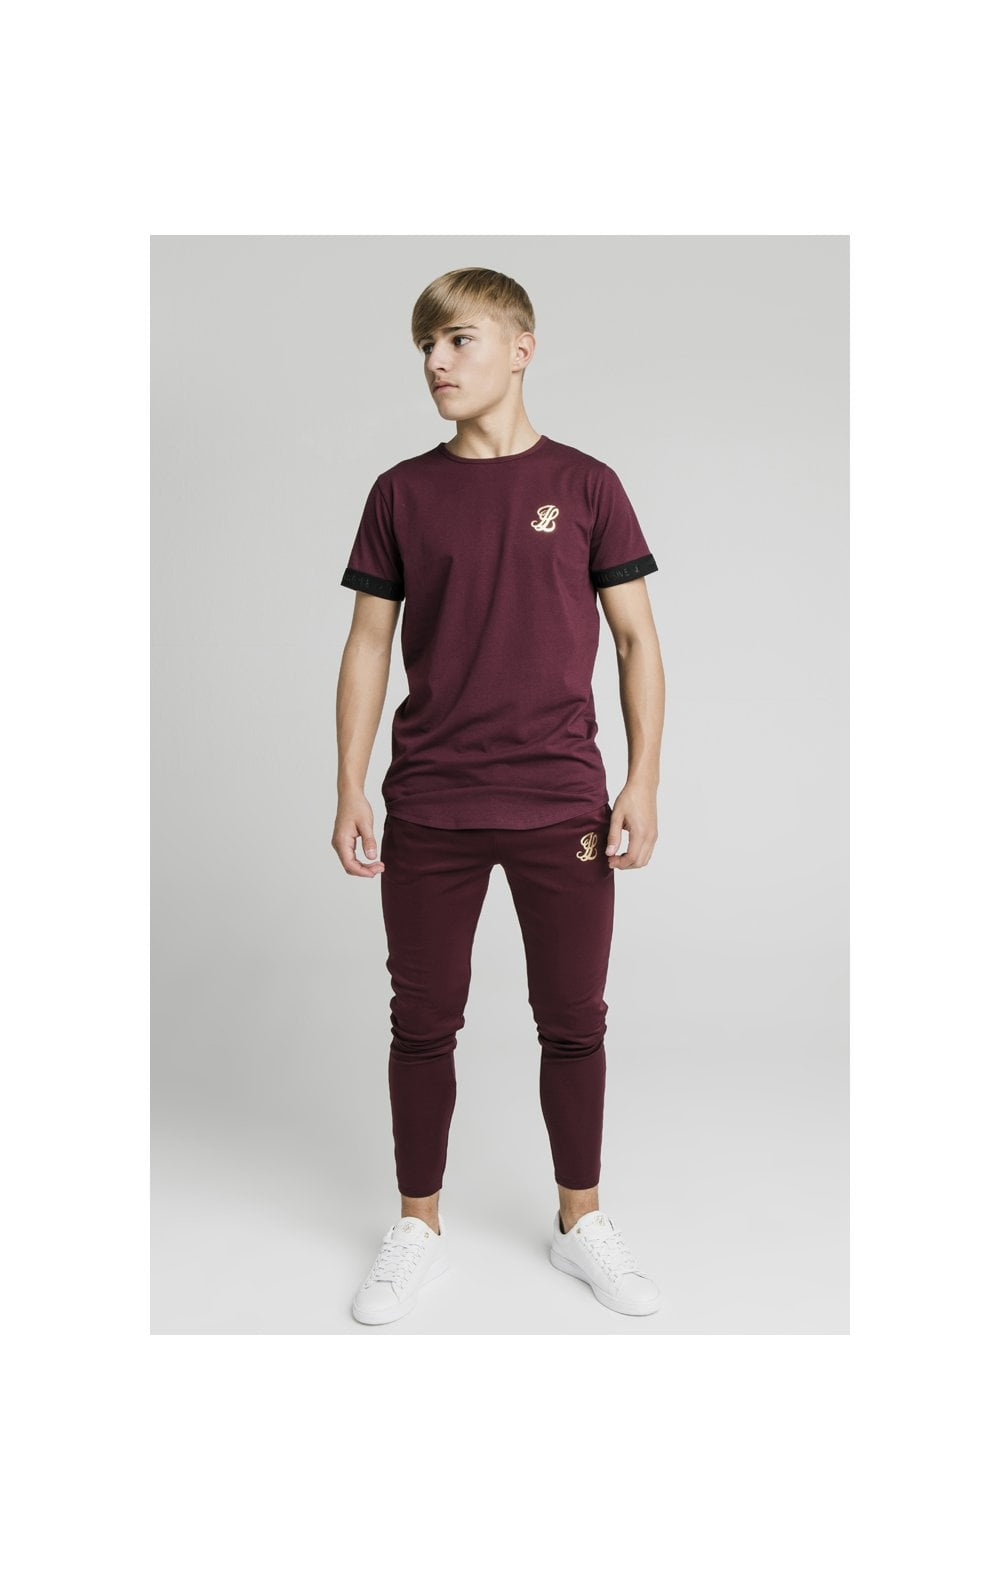 Load image into Gallery viewer, Illusive London Agility Track Pants - Burgundy (4)